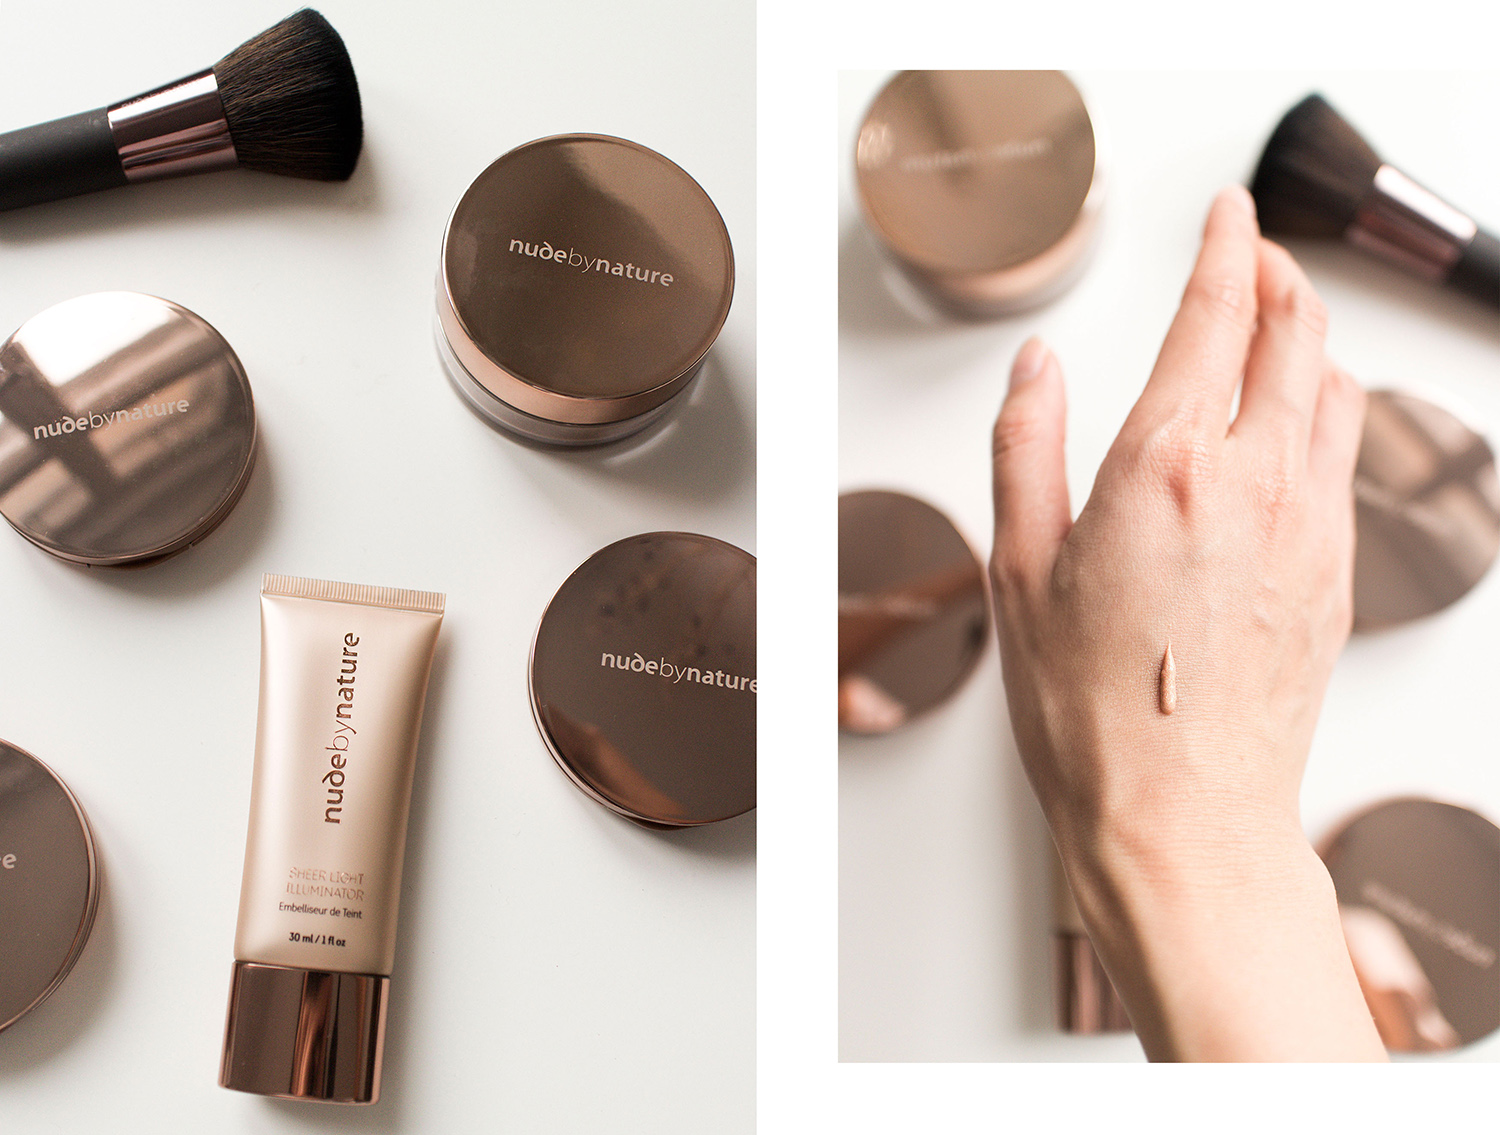 Nude by Nature Christmas Collection Set Review: Sheer Light Illuminator